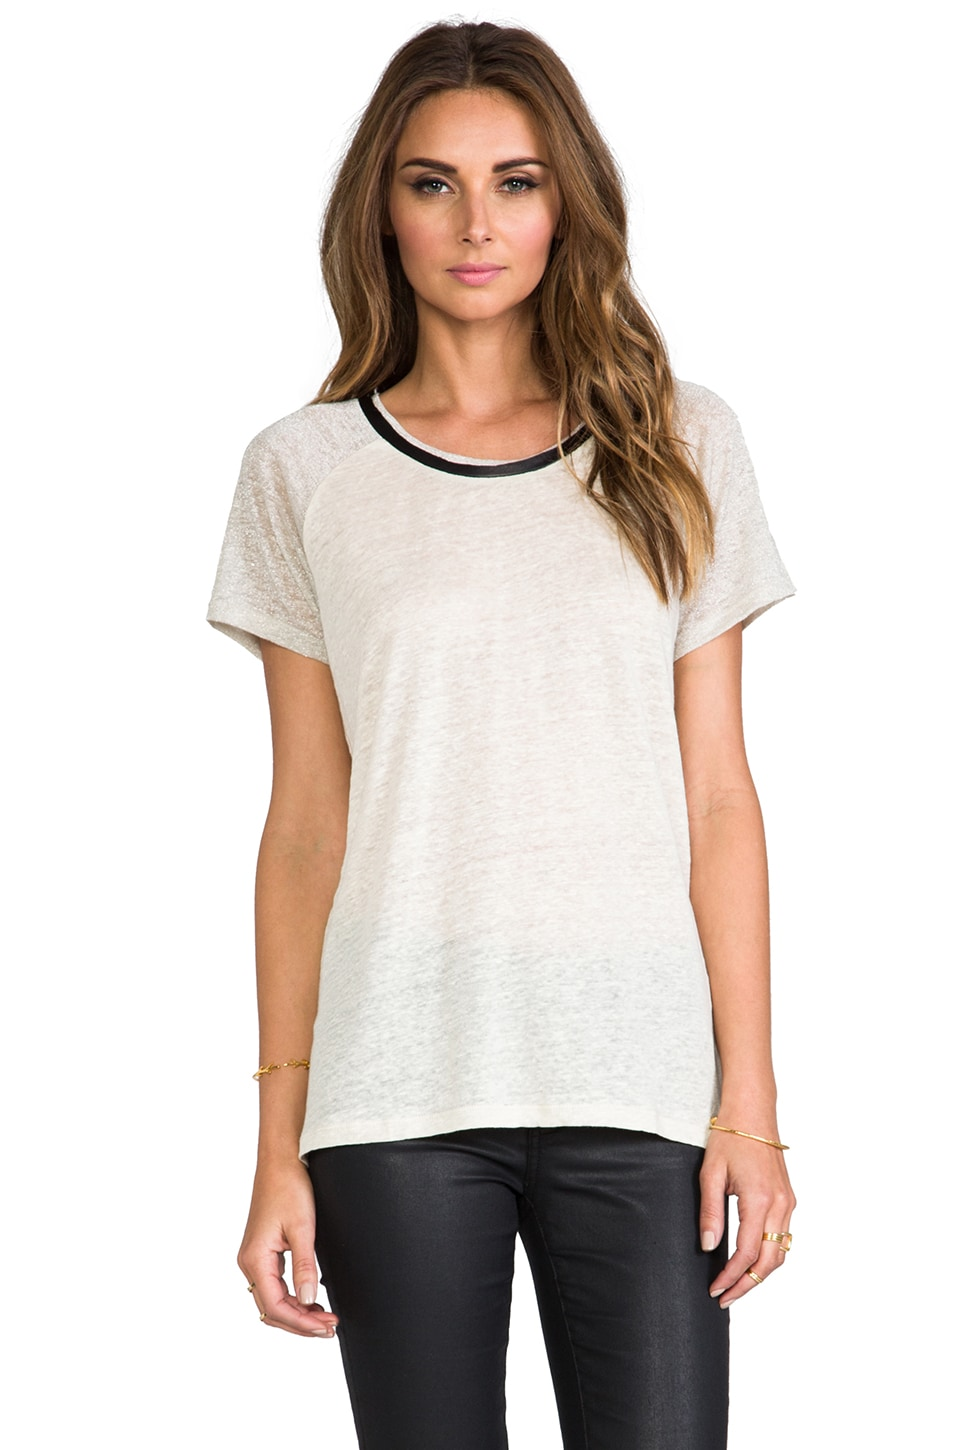 TOWNSEN Light Short Sleeve Raglan Top in Almond